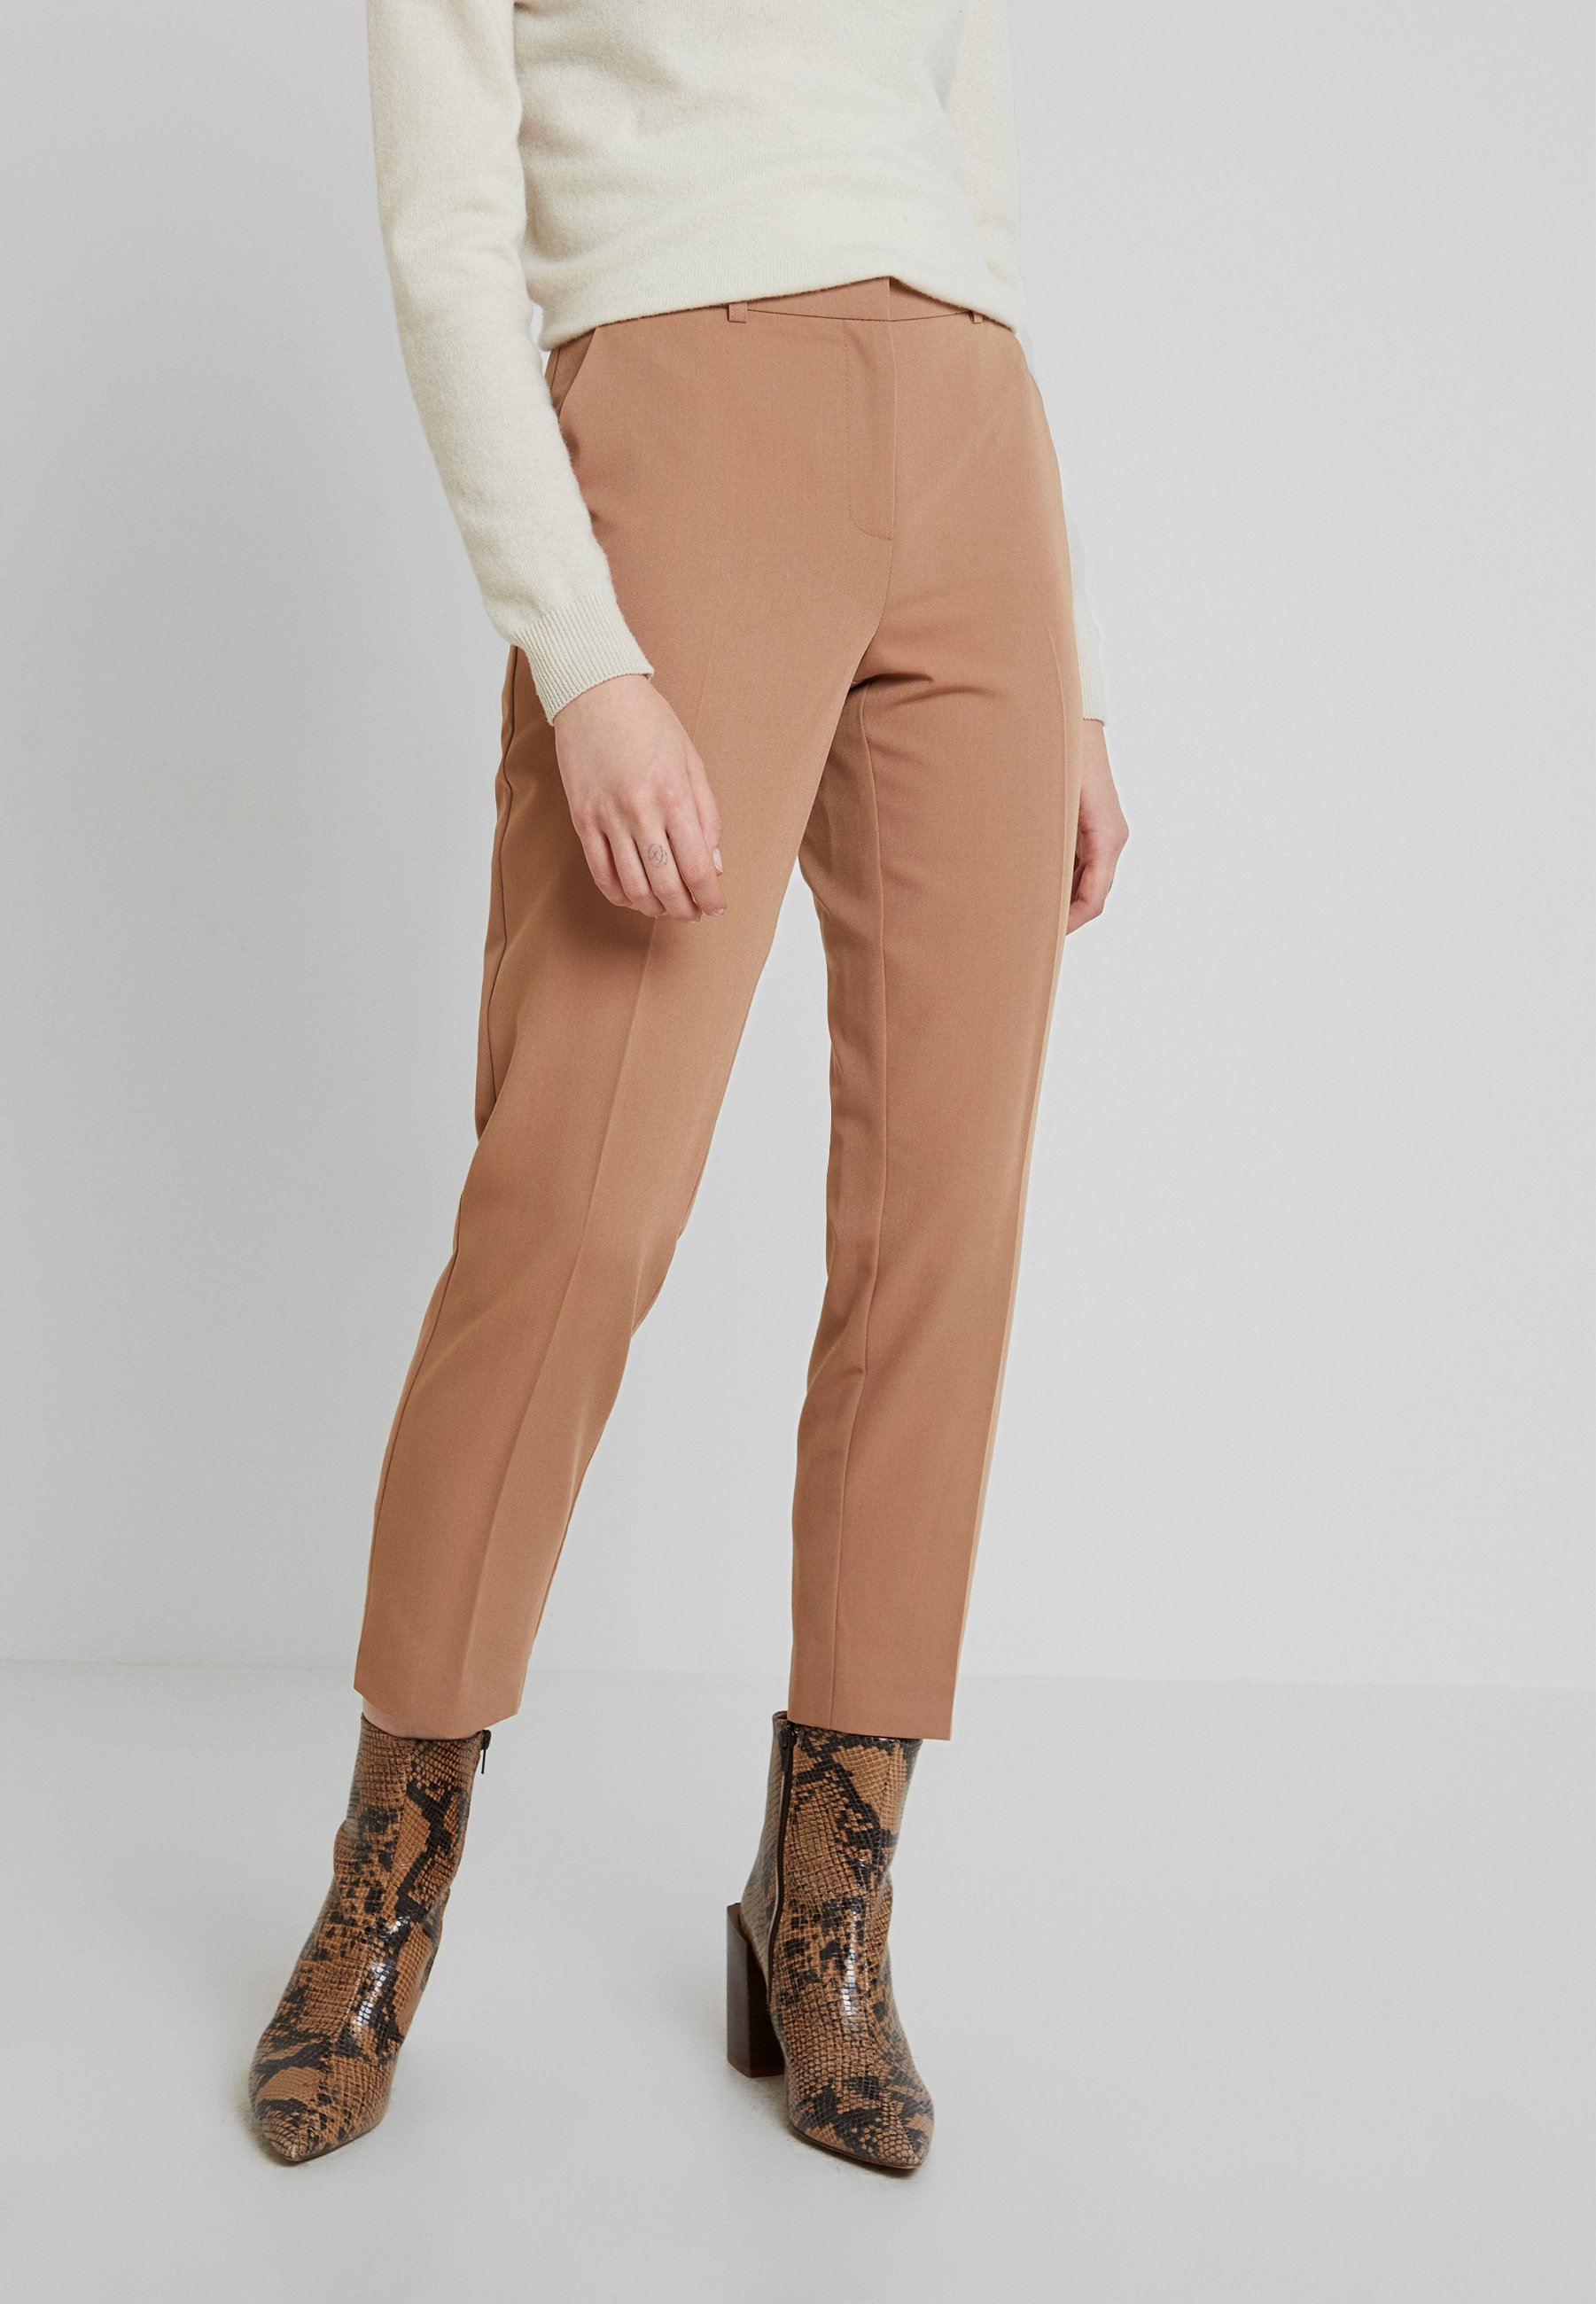 Perkins Ankle Ankle Camel Perkins GrazerPantaloni Camel Dorothy GrazerPantaloni Dorothy SVUGqzMp